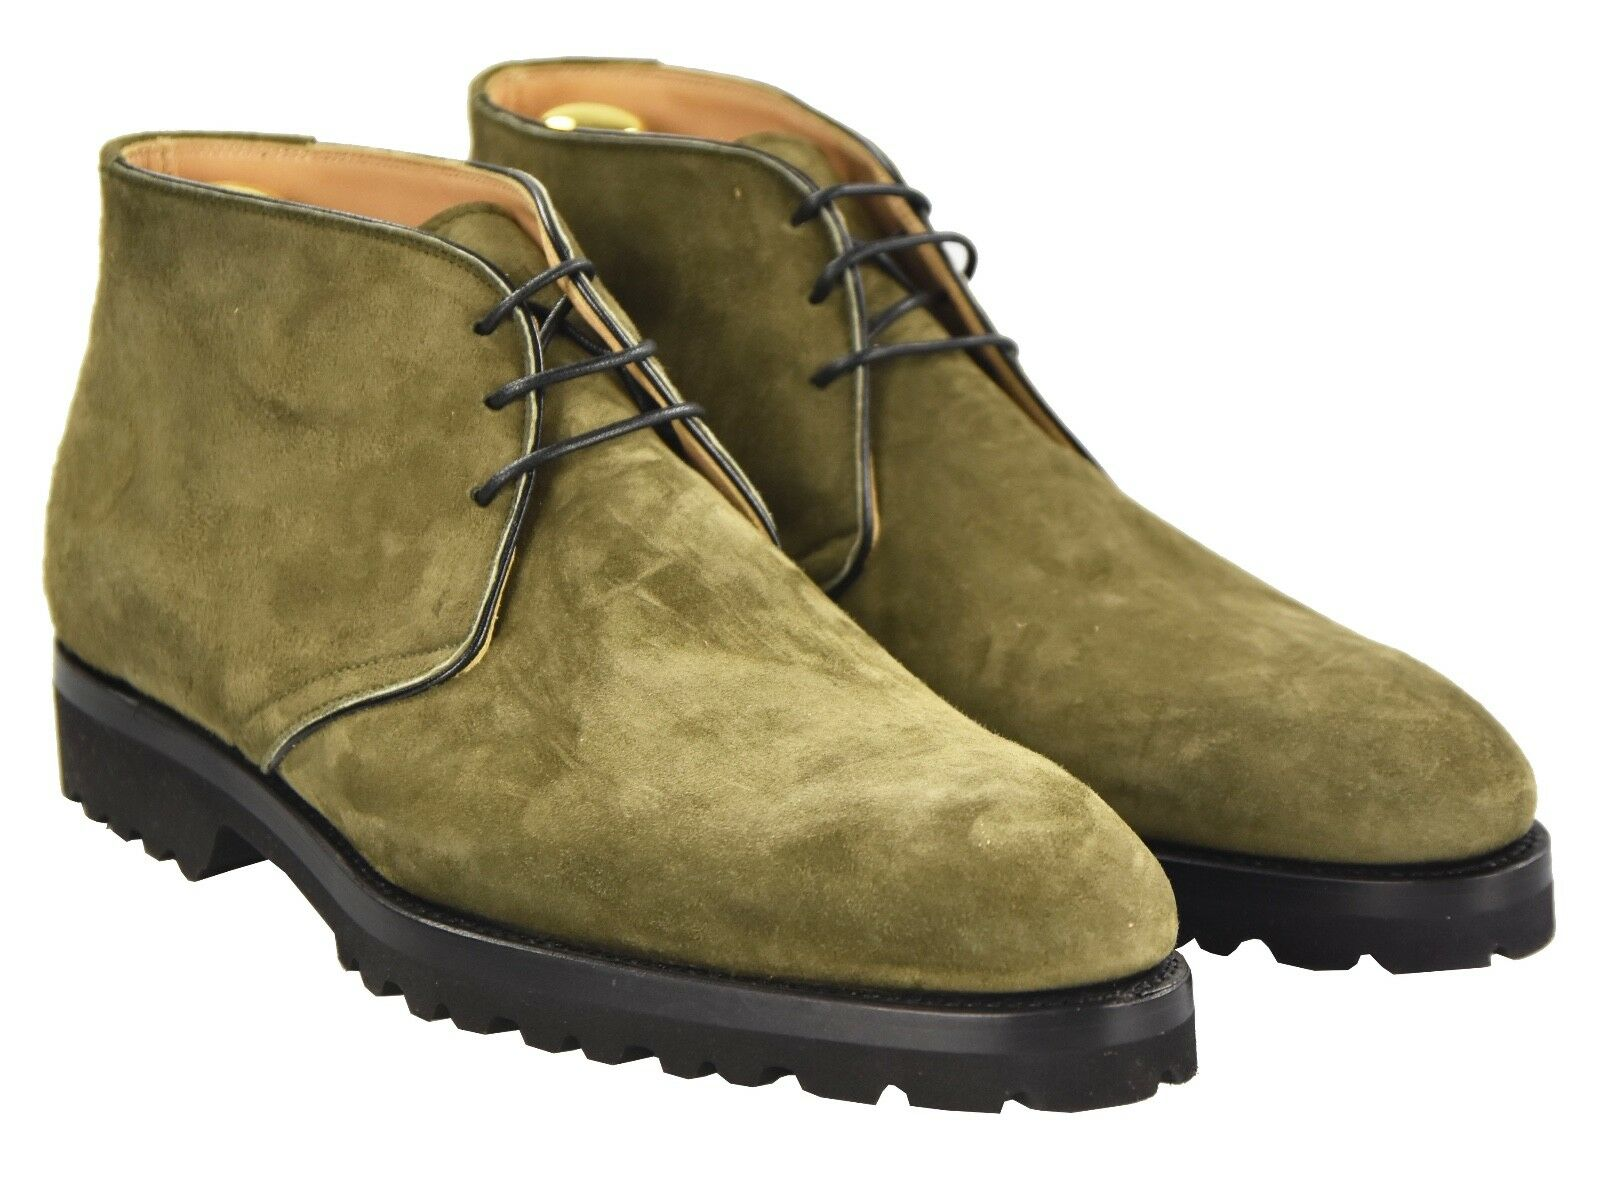 NEW KITON NAPOLI BOOTS SHOES 100% LEATHER SUEDE SIZE 8.5 US 41.5 O2